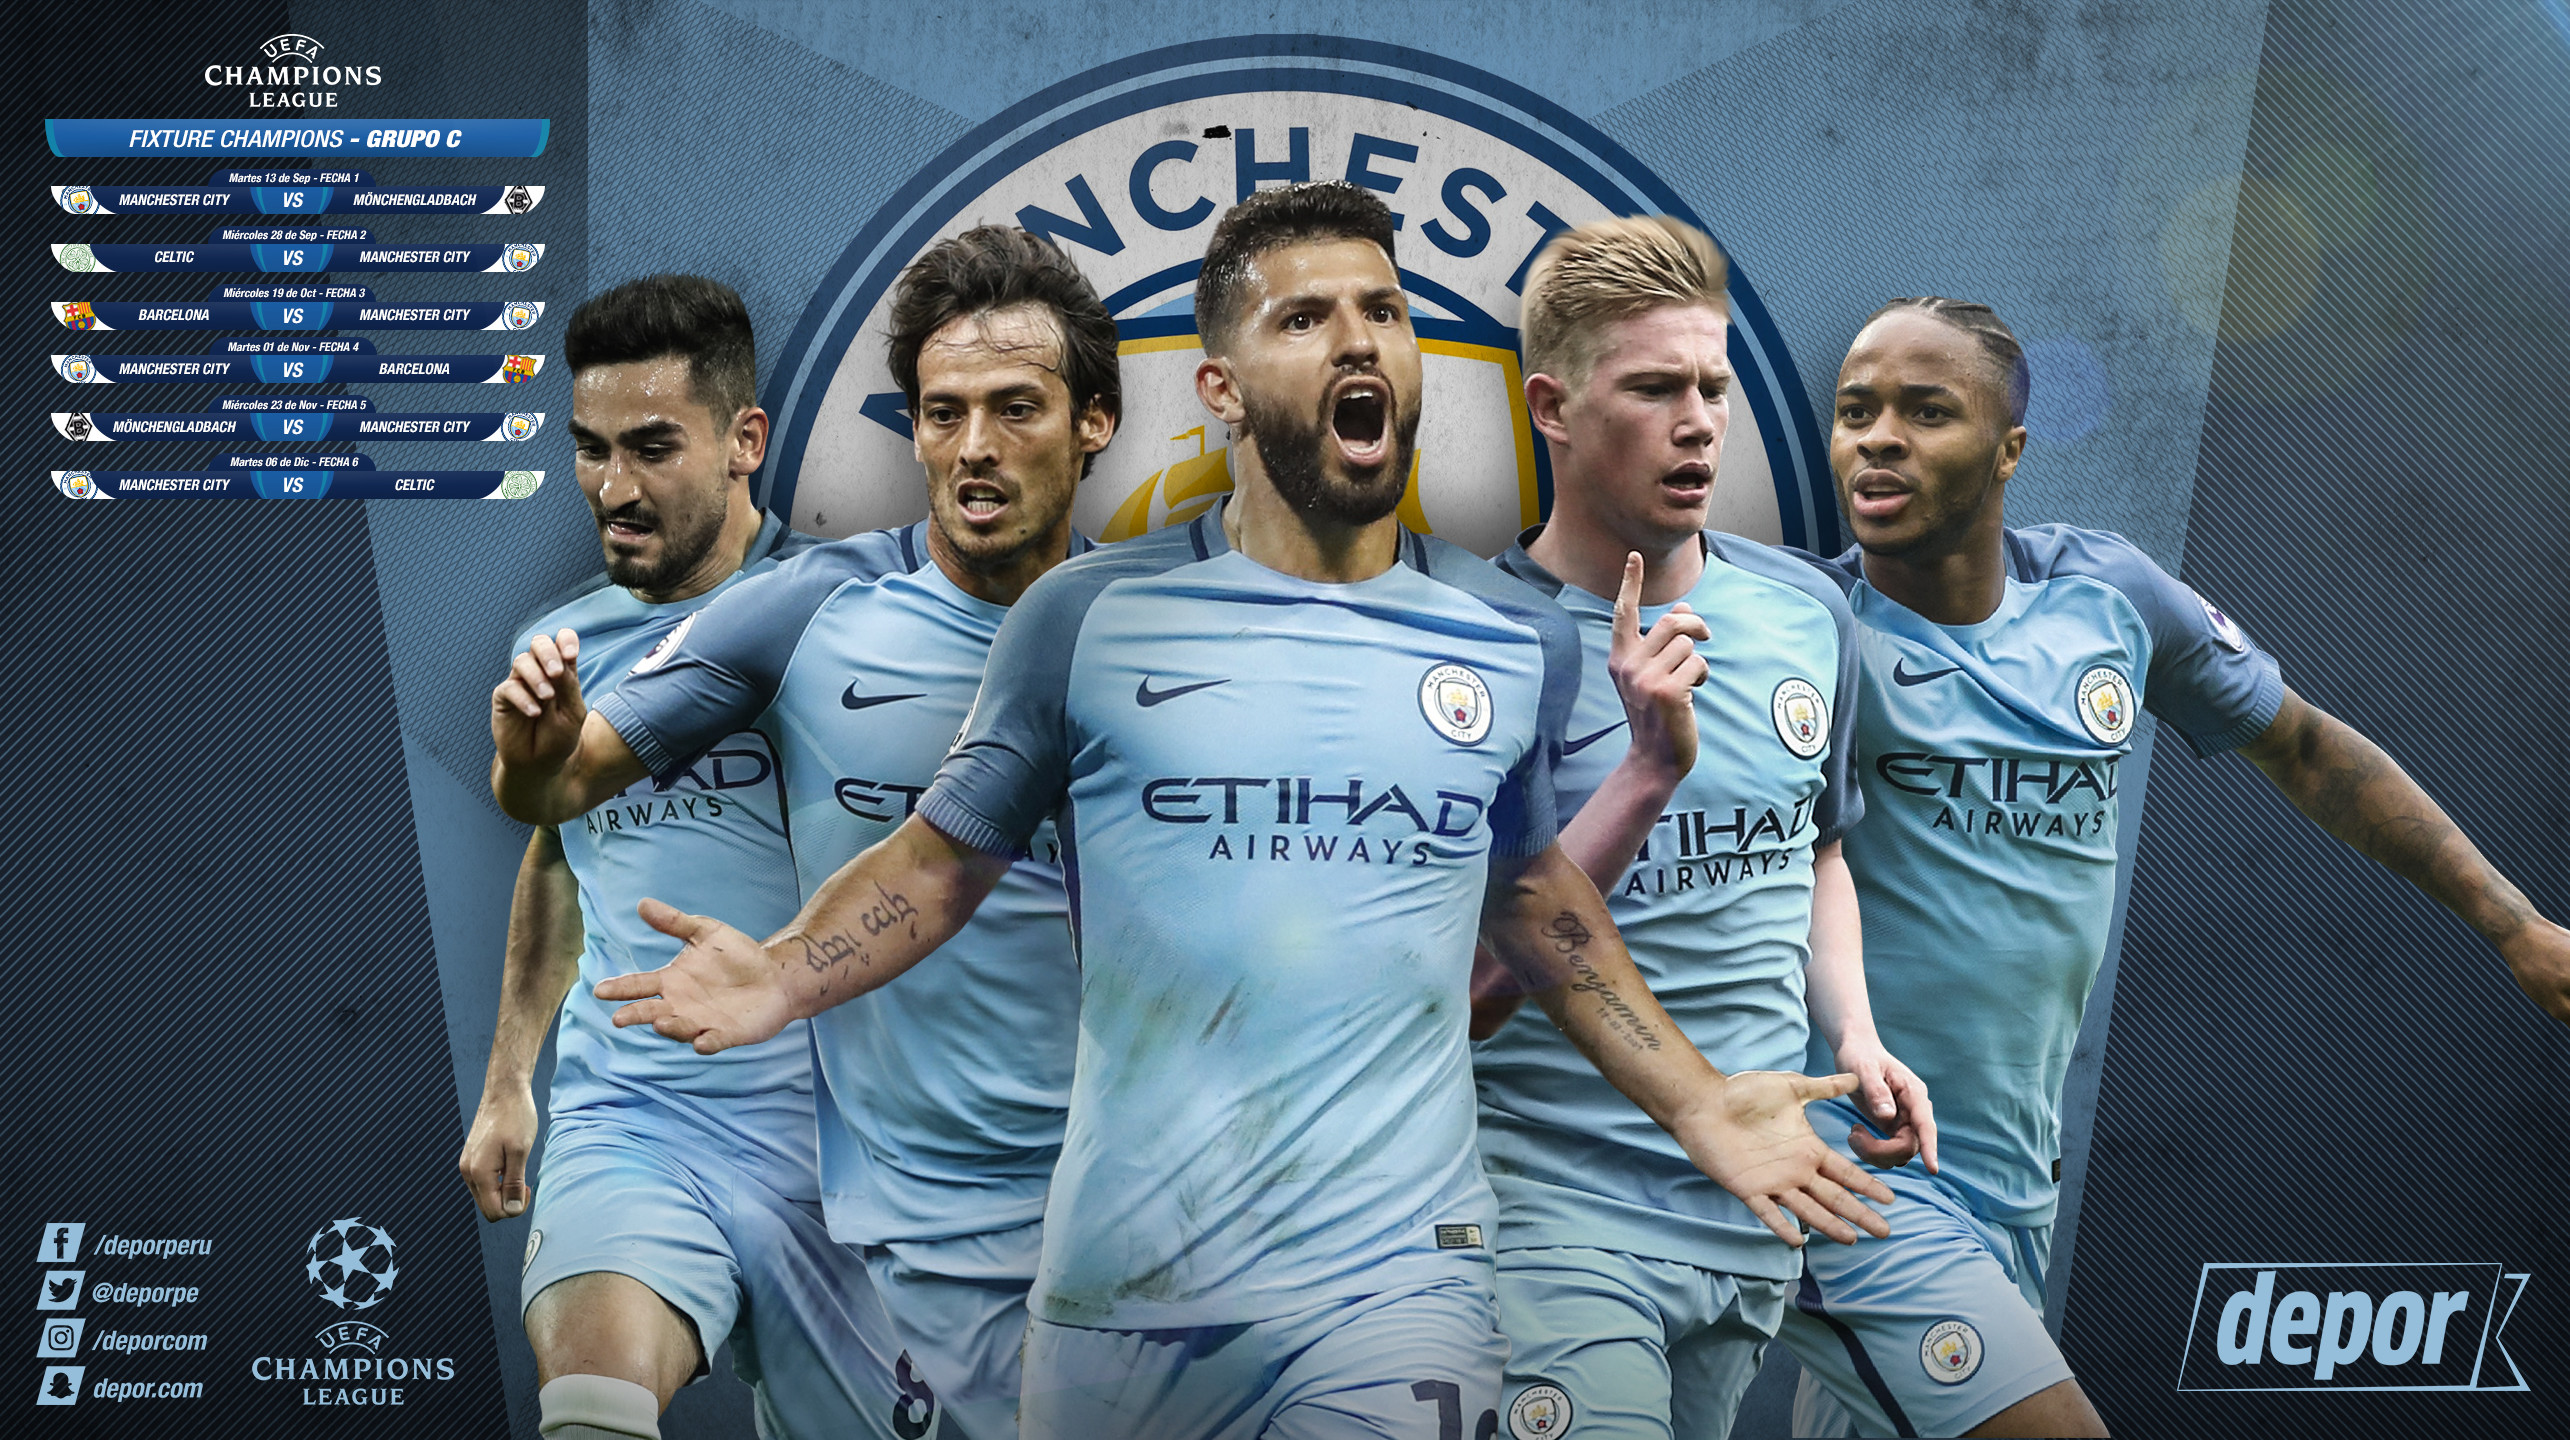 Manchester city wallpaper 2018 72 pictures manchester city wallpapers 2016 9 1920x1080 voltagebd Gallery